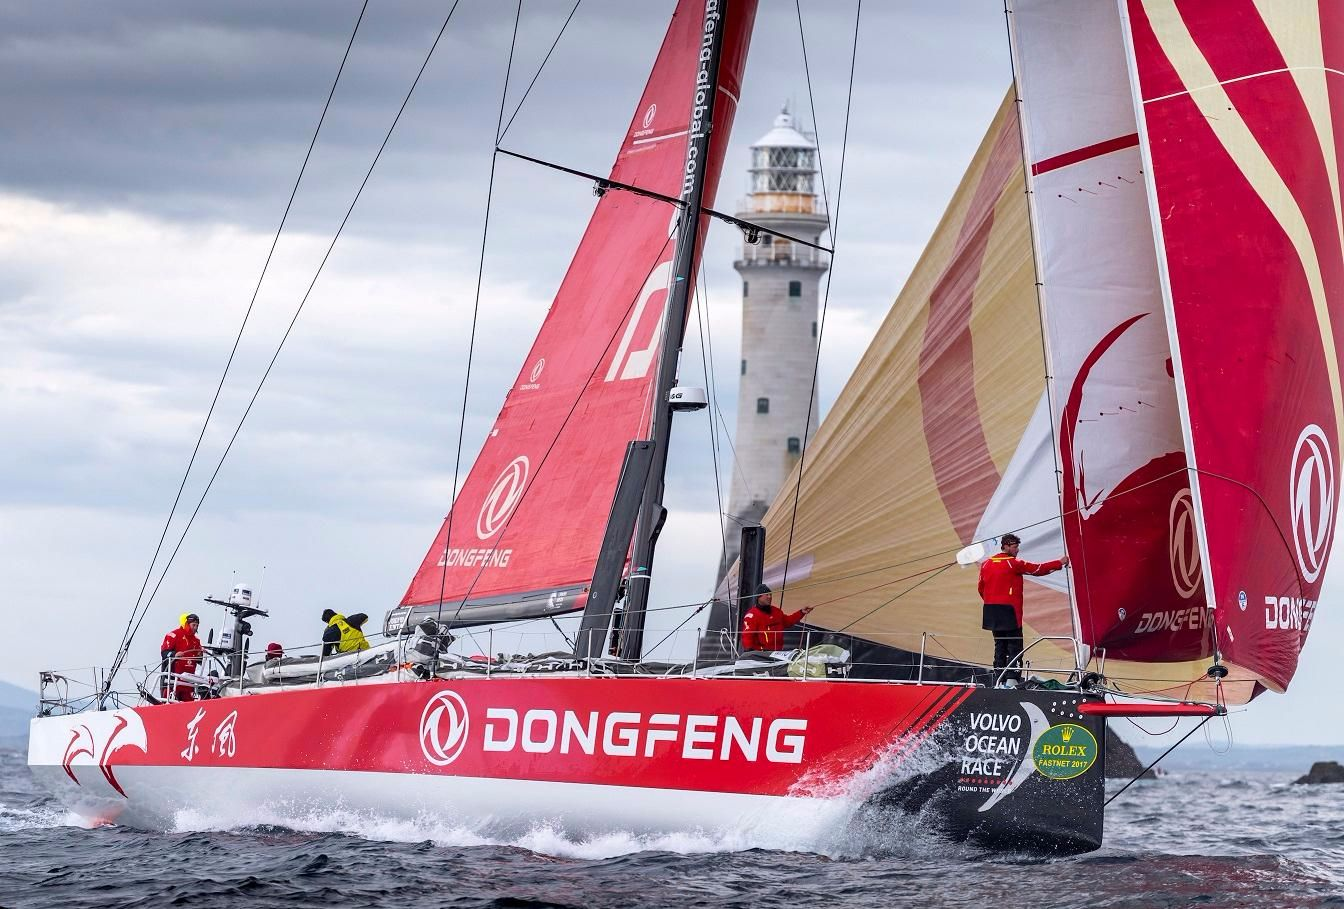 VO65 Dongfeng are the first of their class to round the Fastnet Rock. Credit: ROLEX/Kurt Arrigo